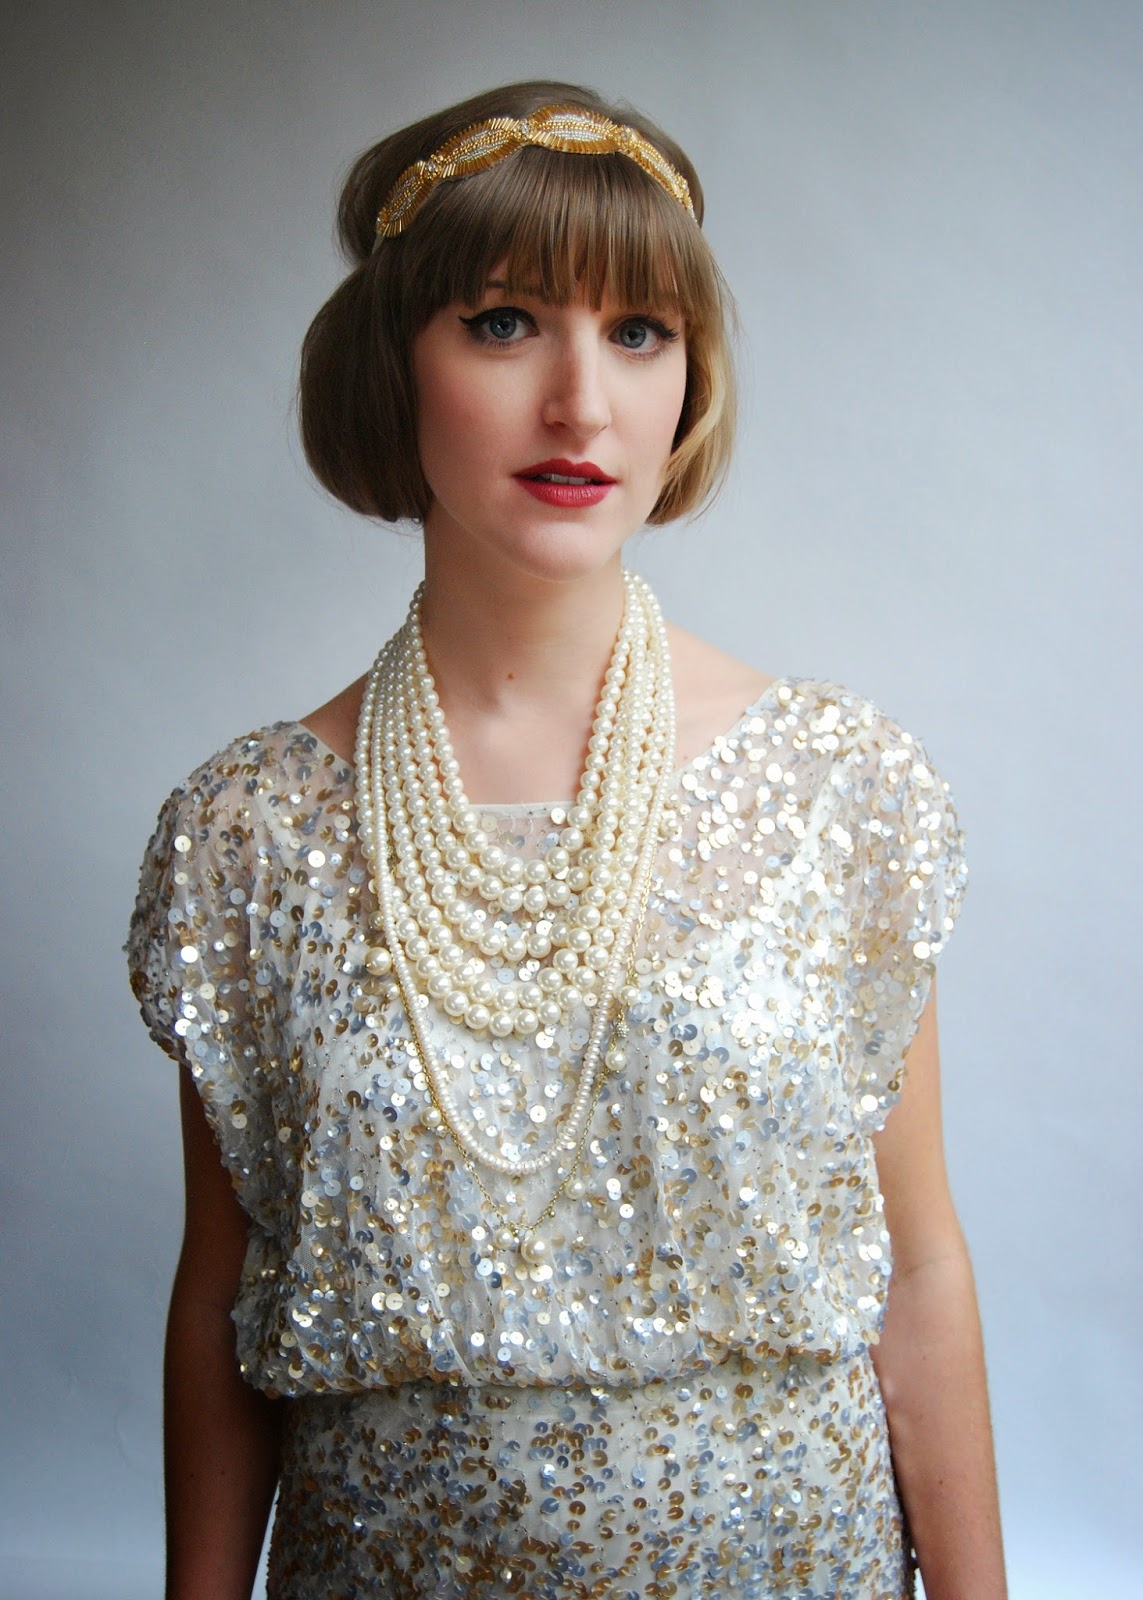 A 1920s great gatsby inspired modern party dress create enjoy source solutioingenieria Gallery